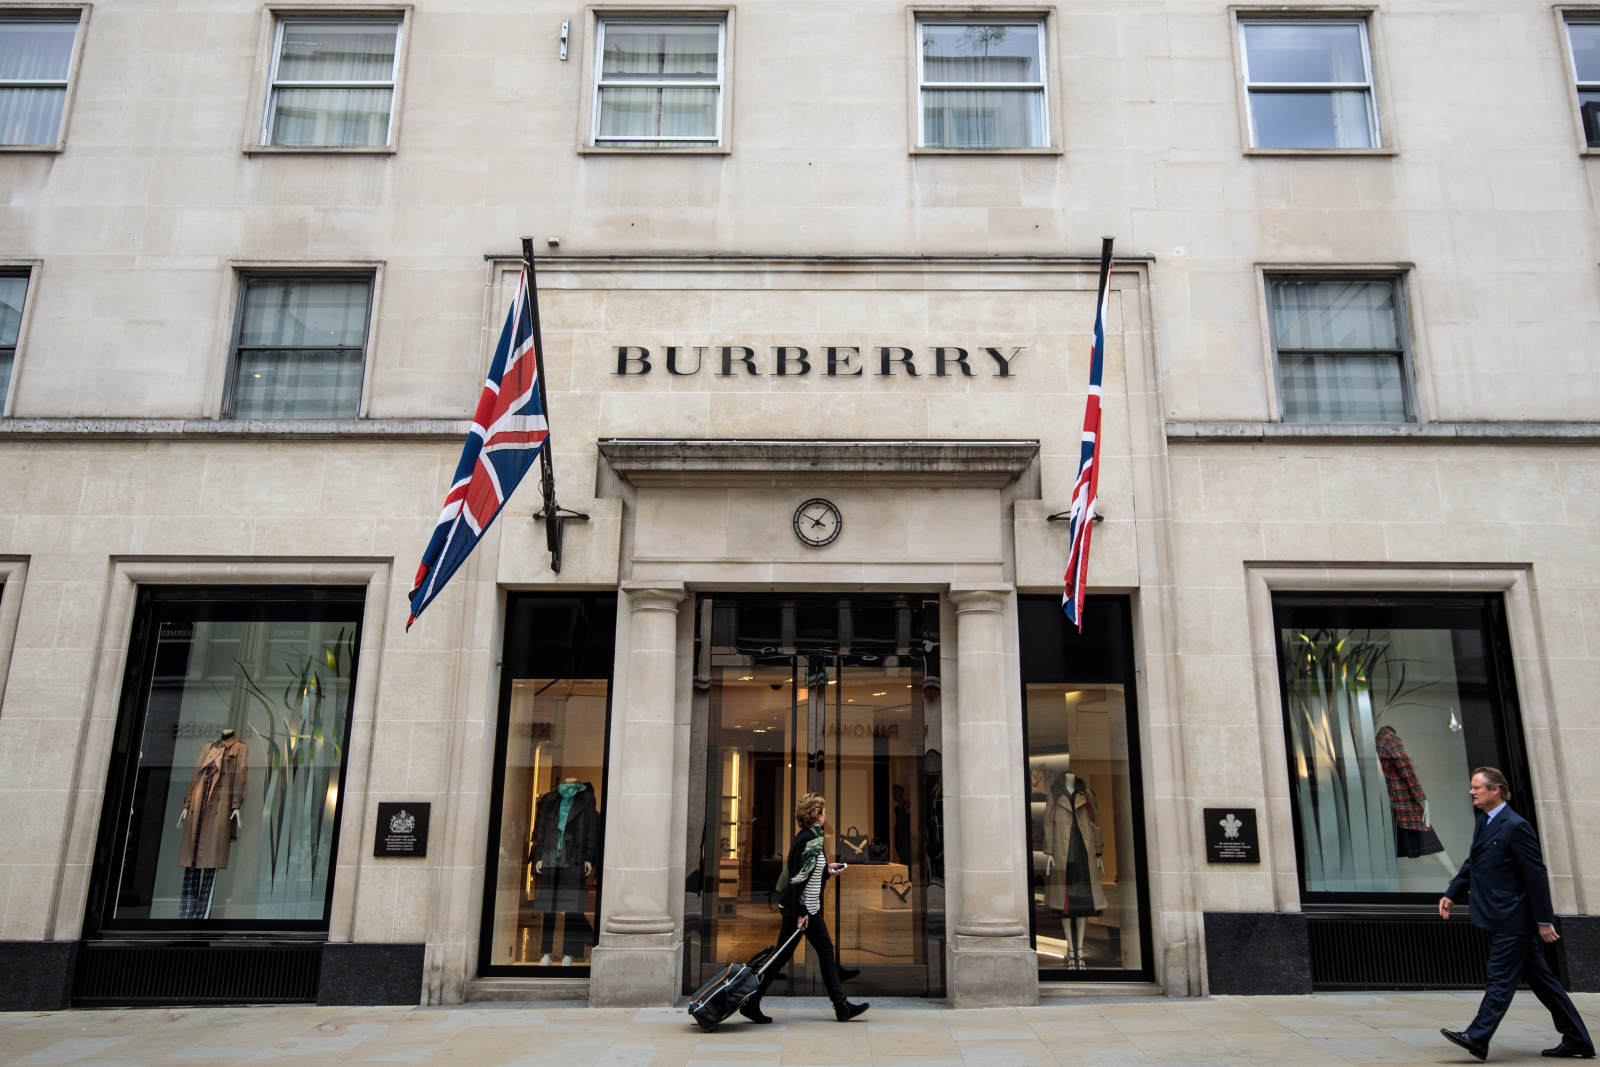 Burberry to stop burning clothes to prevent 'wrong people' wearing them - Dotemirates